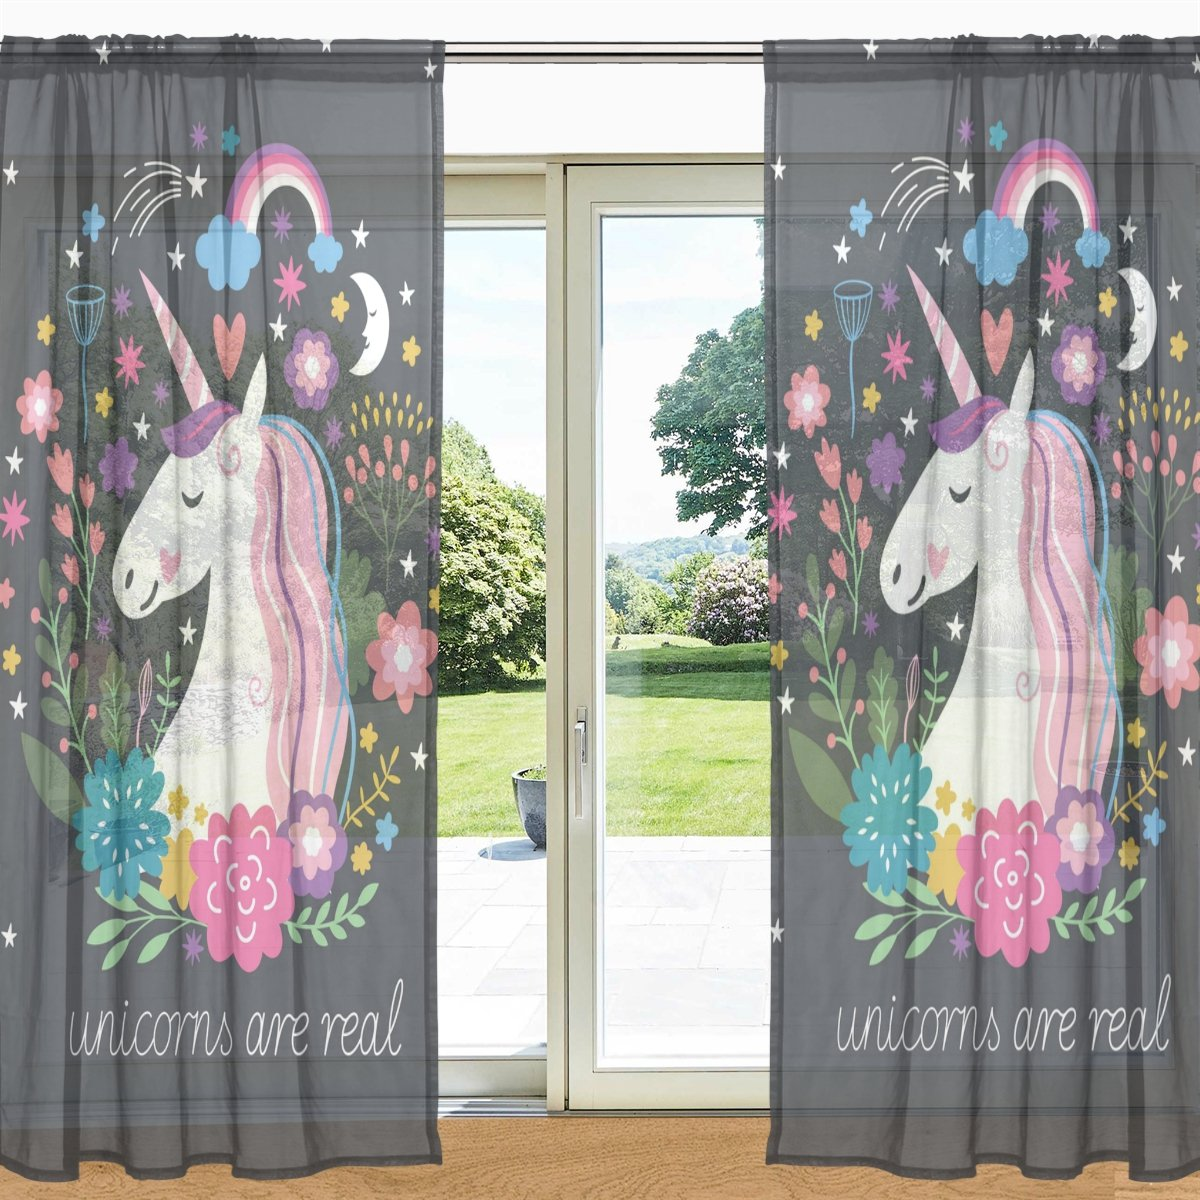 MyDaily Floral Unicorn And Rainbow Printed Sheer Window and Door Curtain 2 Panels 55 x 78, Rod Pocket Panels for Living Room Bedroom Decor